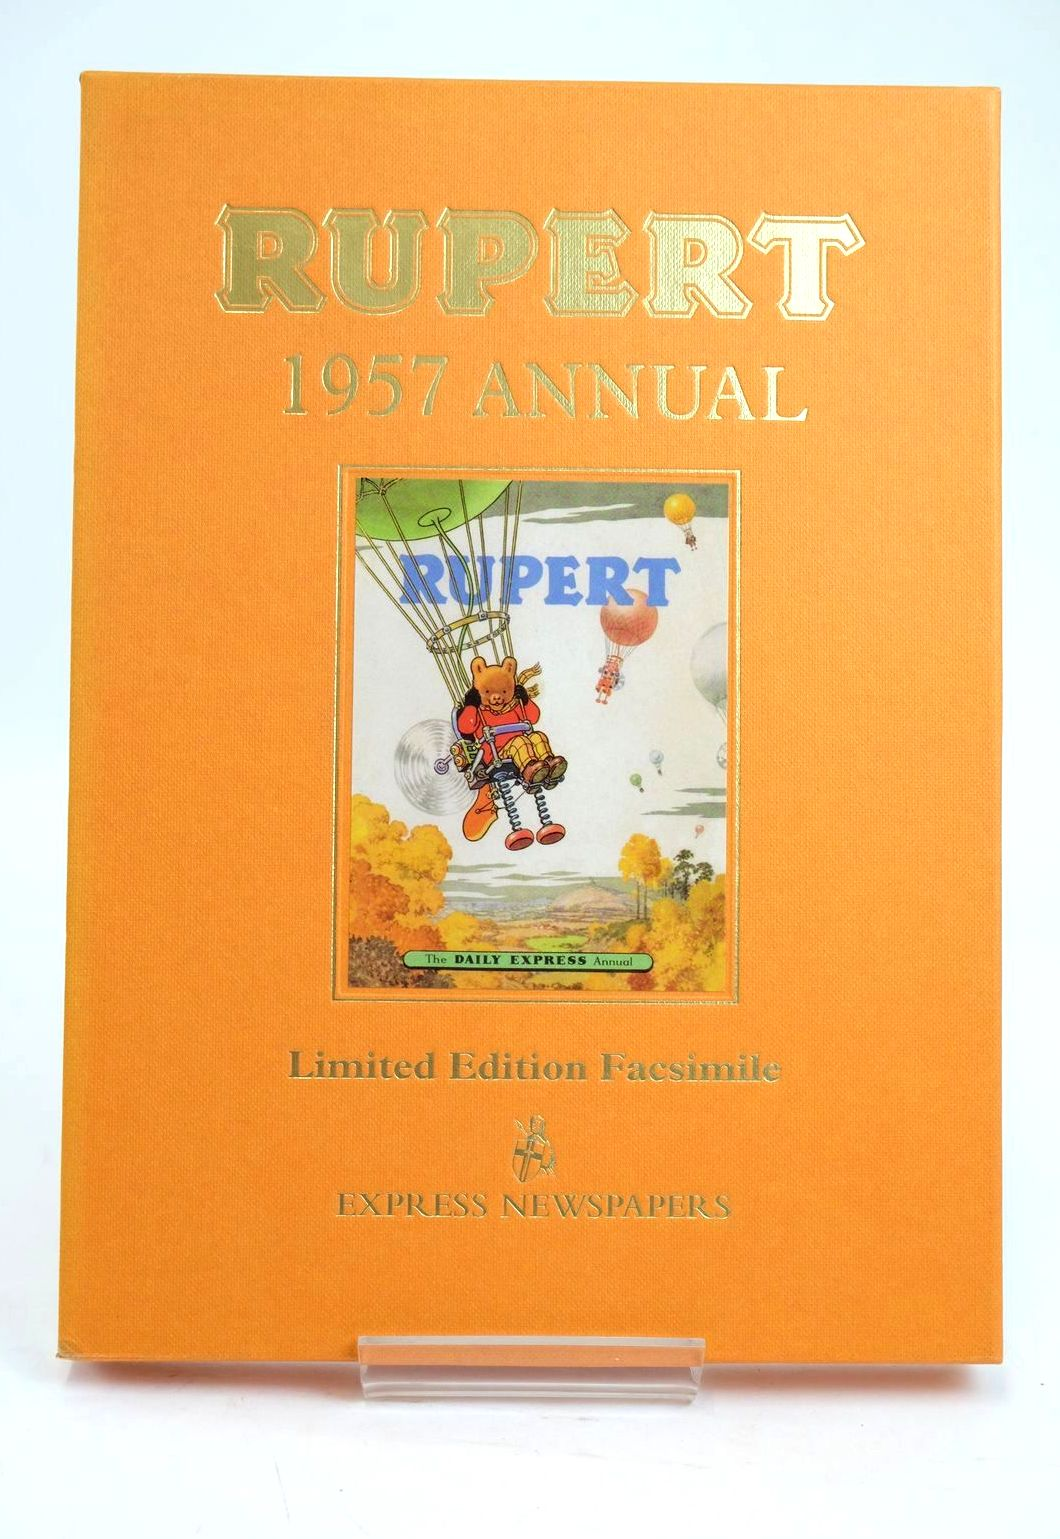 Photo of RUPERT ANNUAL 1957 (FACSIMILE) written by Bestall, Alfred illustrated by Bestall, Alfred published by Express Newspapers Ltd. (STOCK CODE: 1319418)  for sale by Stella & Rose's Books